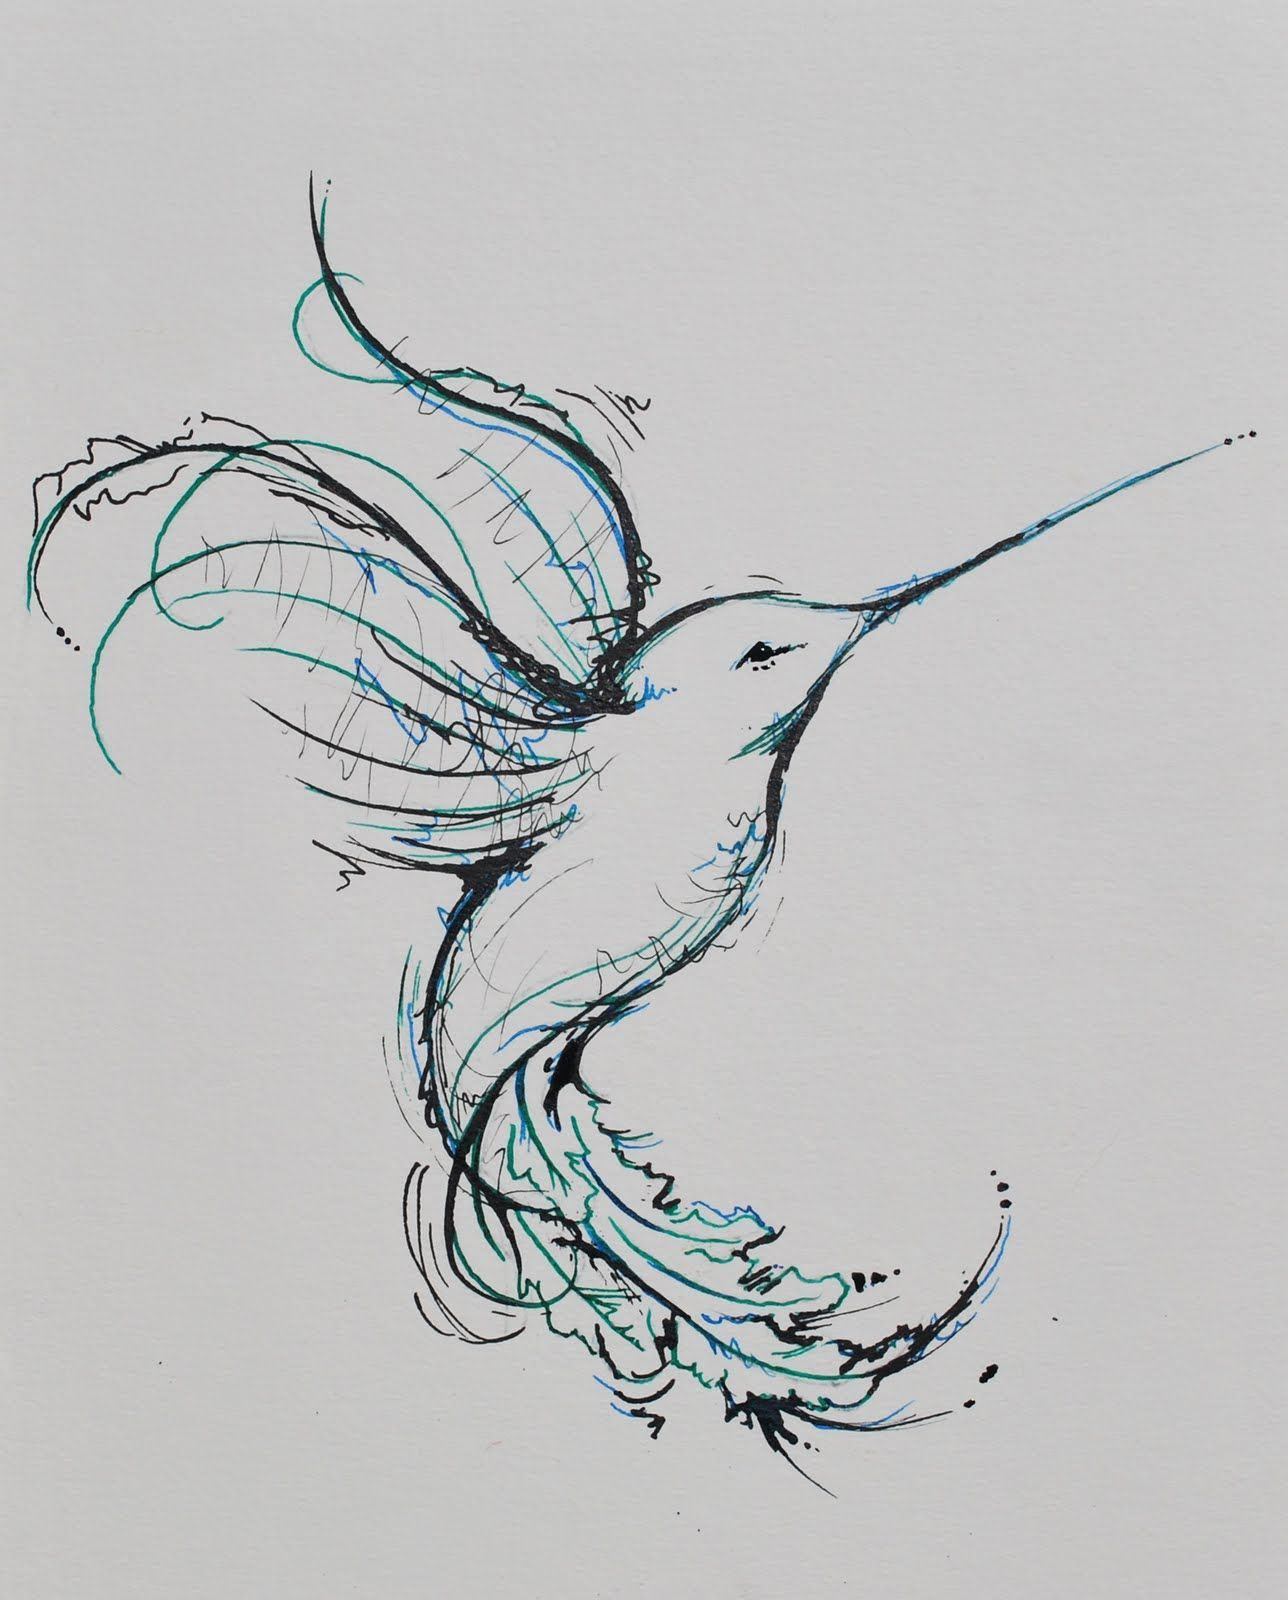 Hummingbird Tattoo Simple : hummingbird, tattoo, simple, Hummingbird, (With, Images), Tattoo,, Tattoos,, White, Tattoo